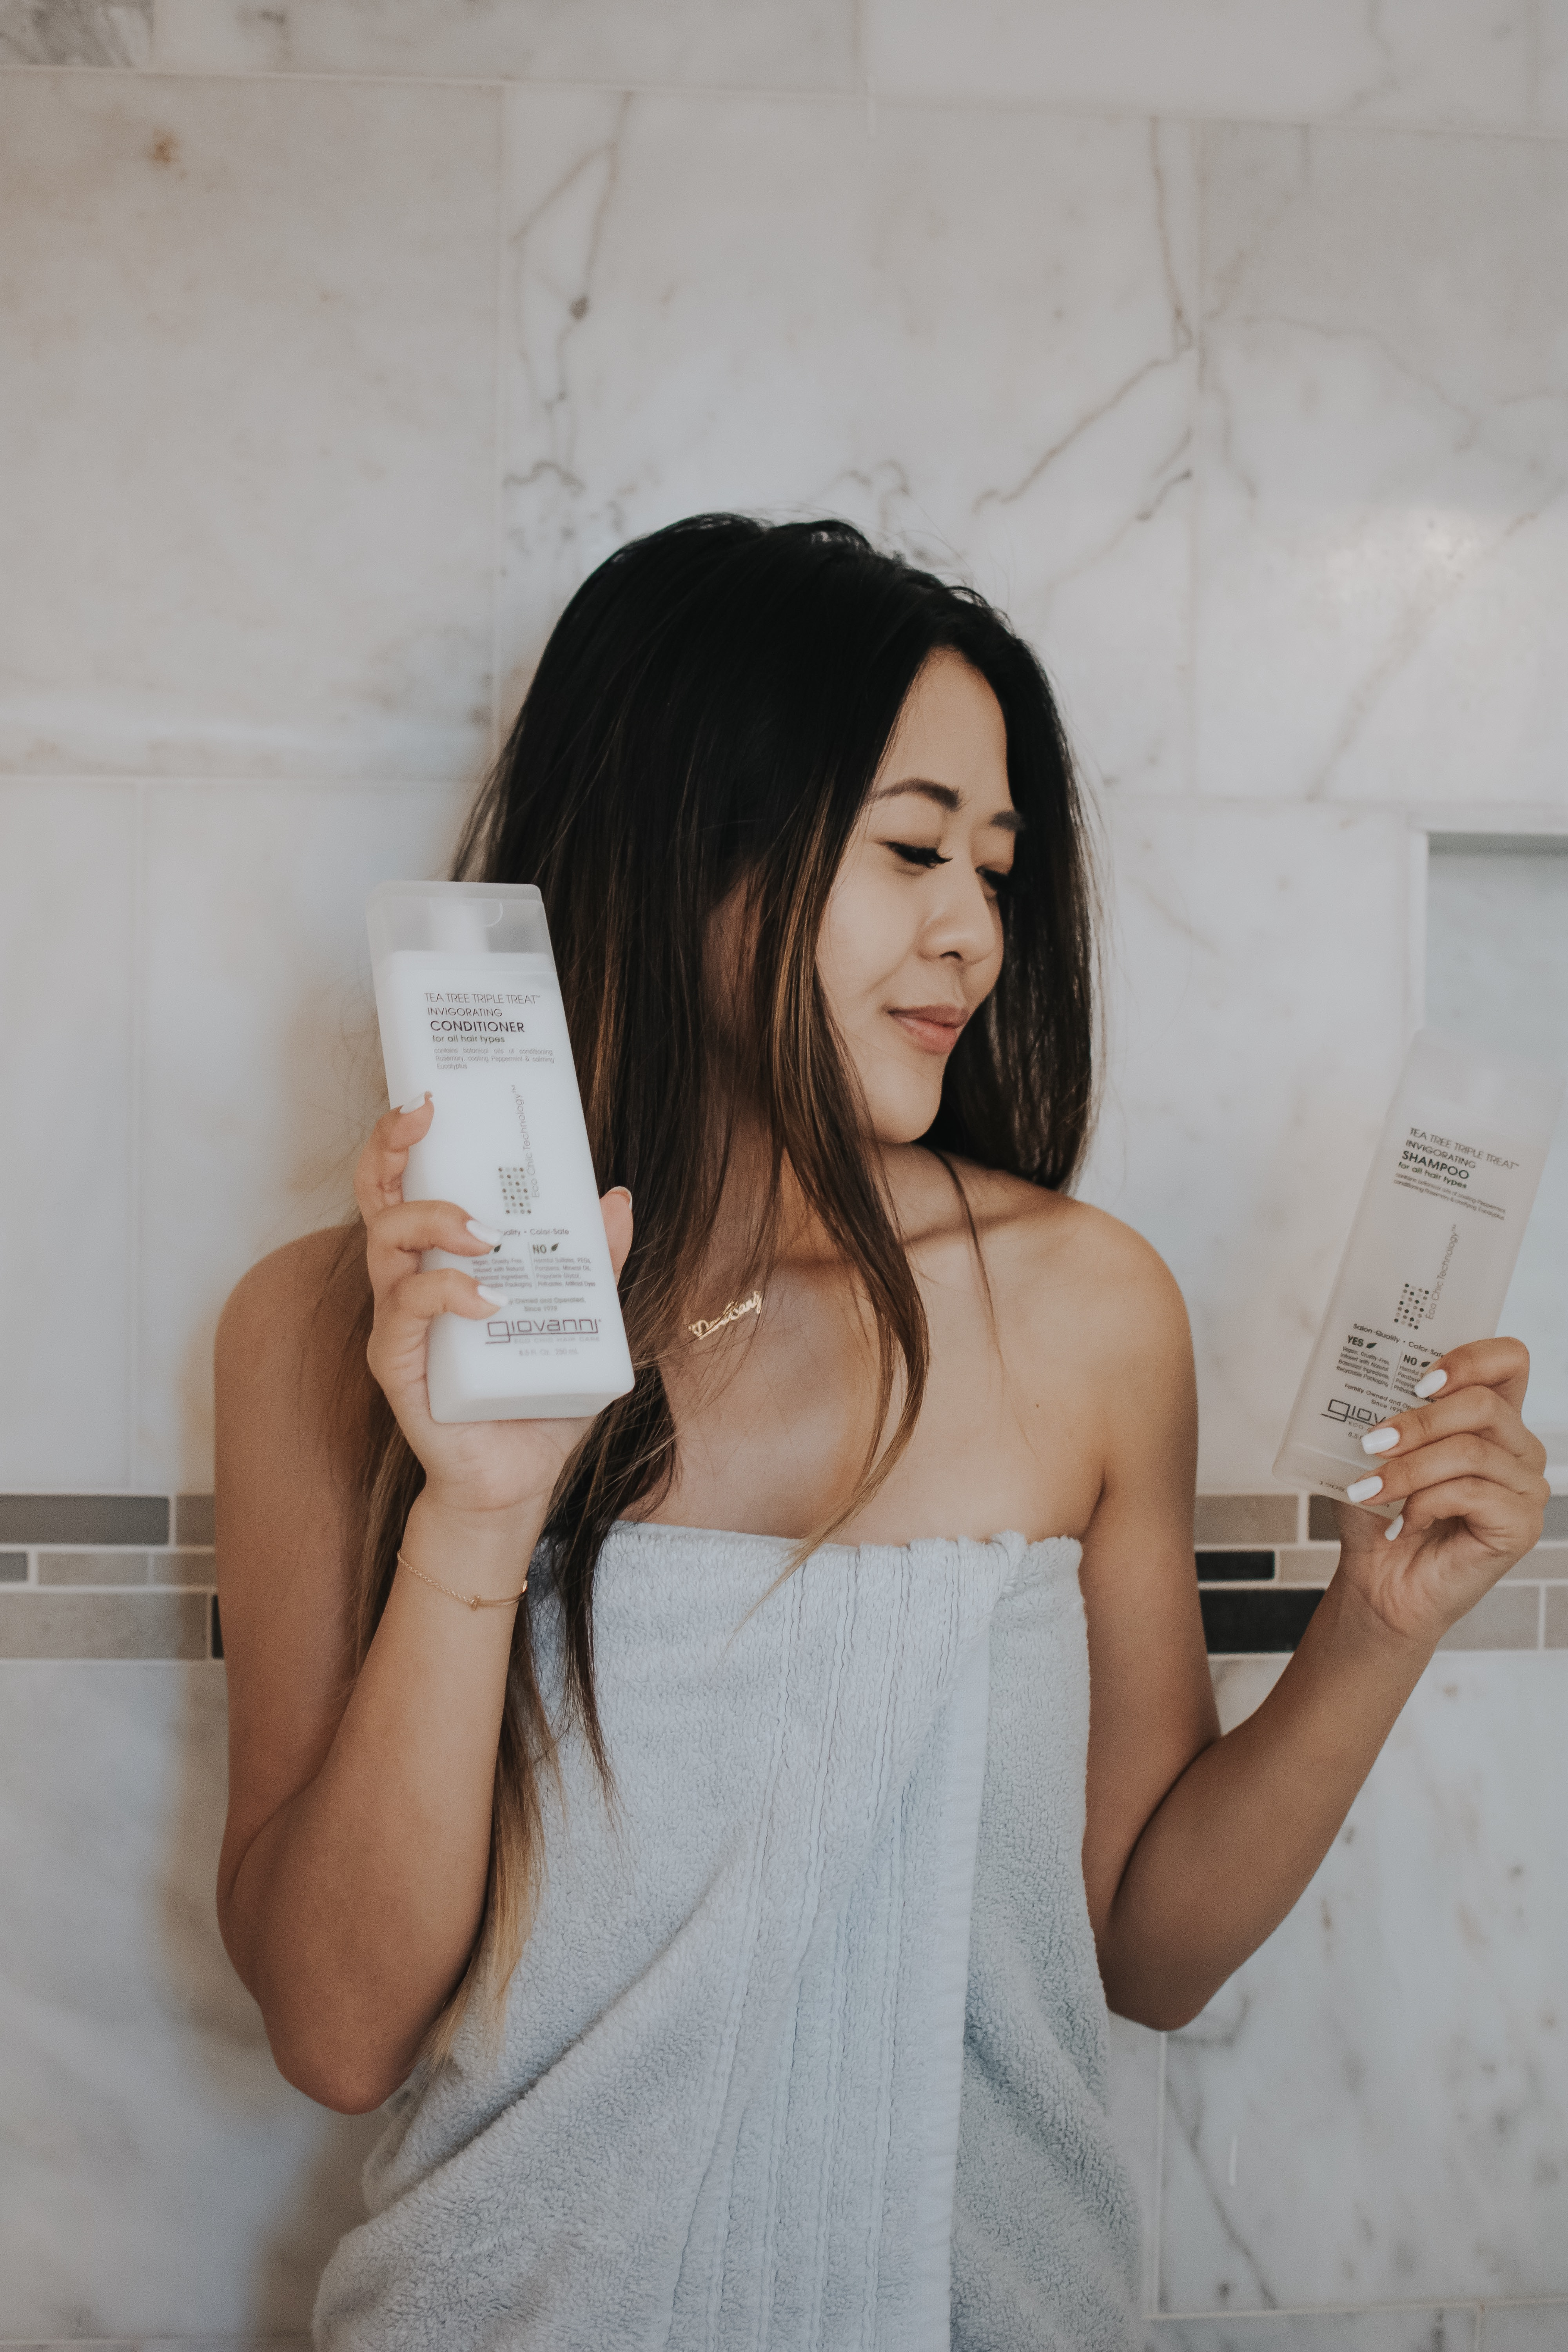 Demi Bang talks about vegan and cruelty hair products, Giovanni Eco Chic Hair Care.